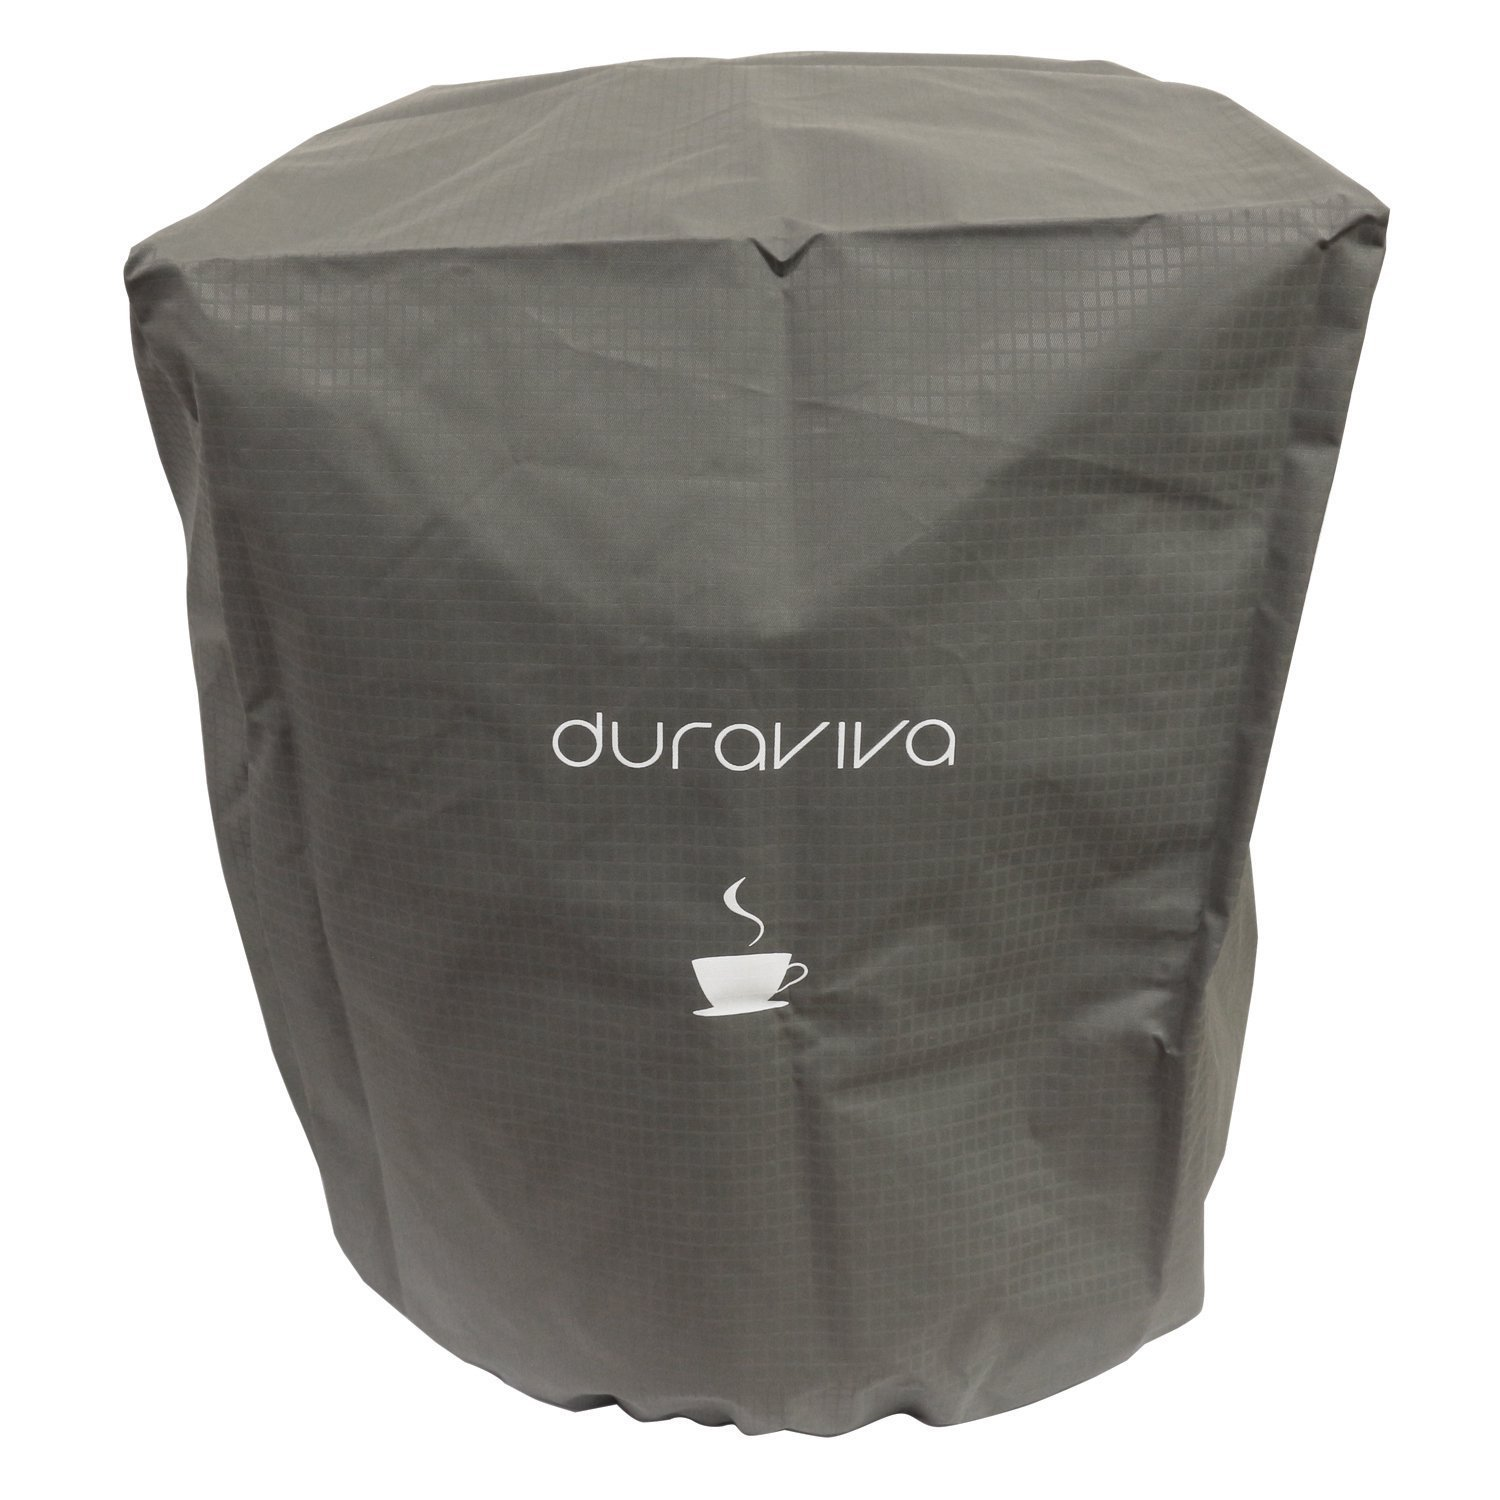 Duraviva Coffee Maker Cover - Nylon, Waterproof, Universal Fit - Fits Keurig K50 K400 K500 series and Similar Brewing Systems (Gray)